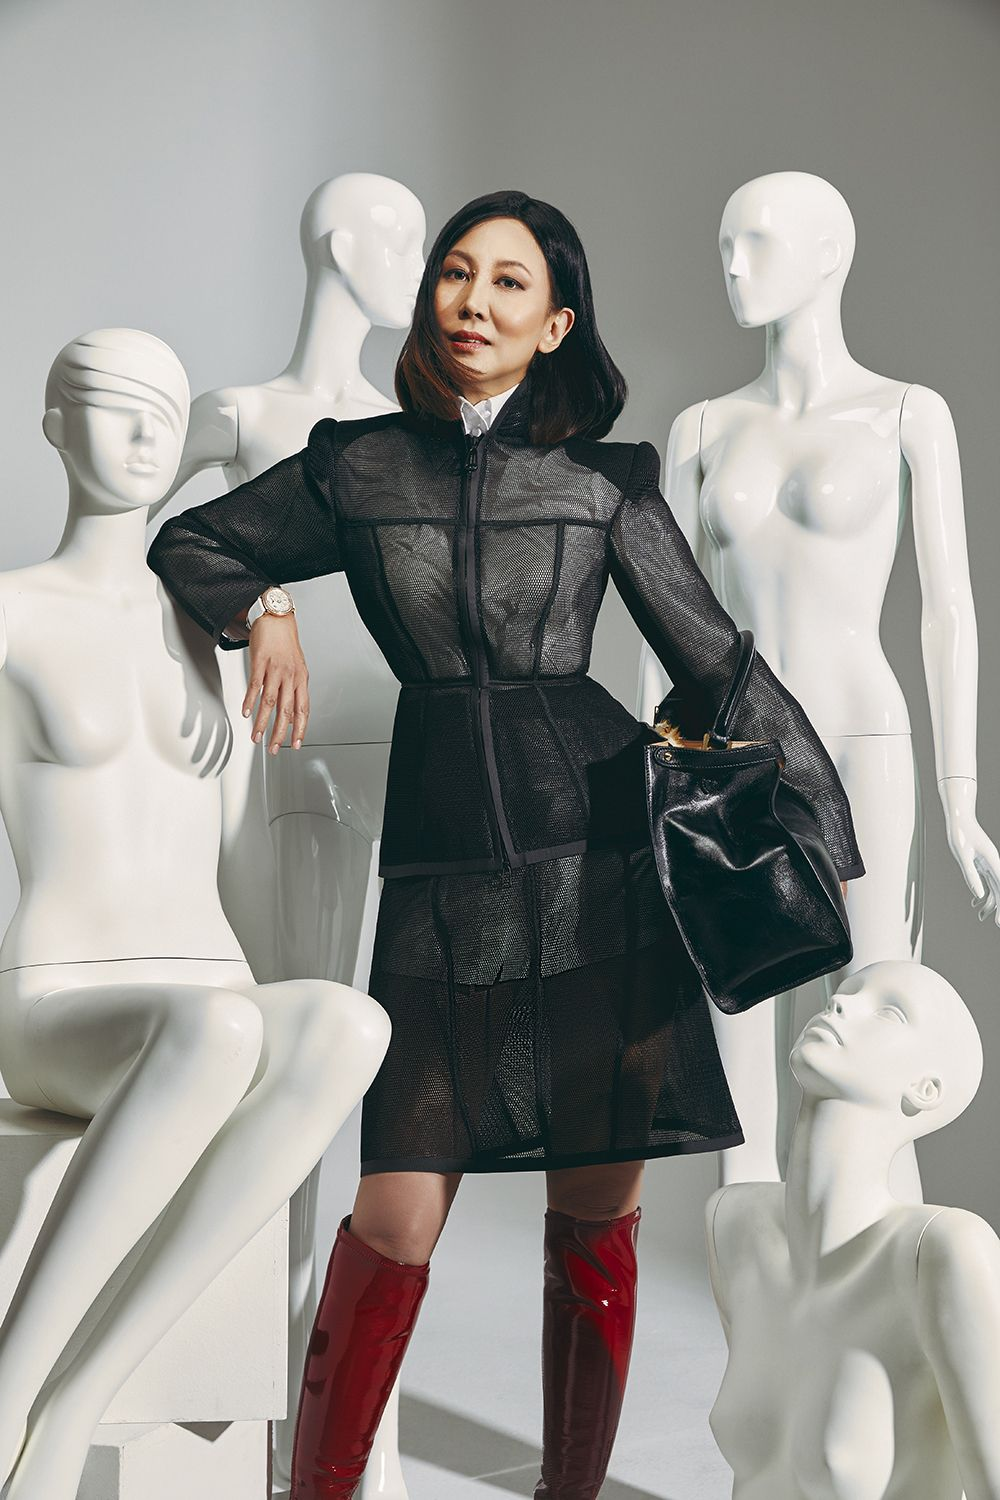 Fashion Collectors: June Rin Shares Why Her Fendi Baguettes Serve As Memory Keepers